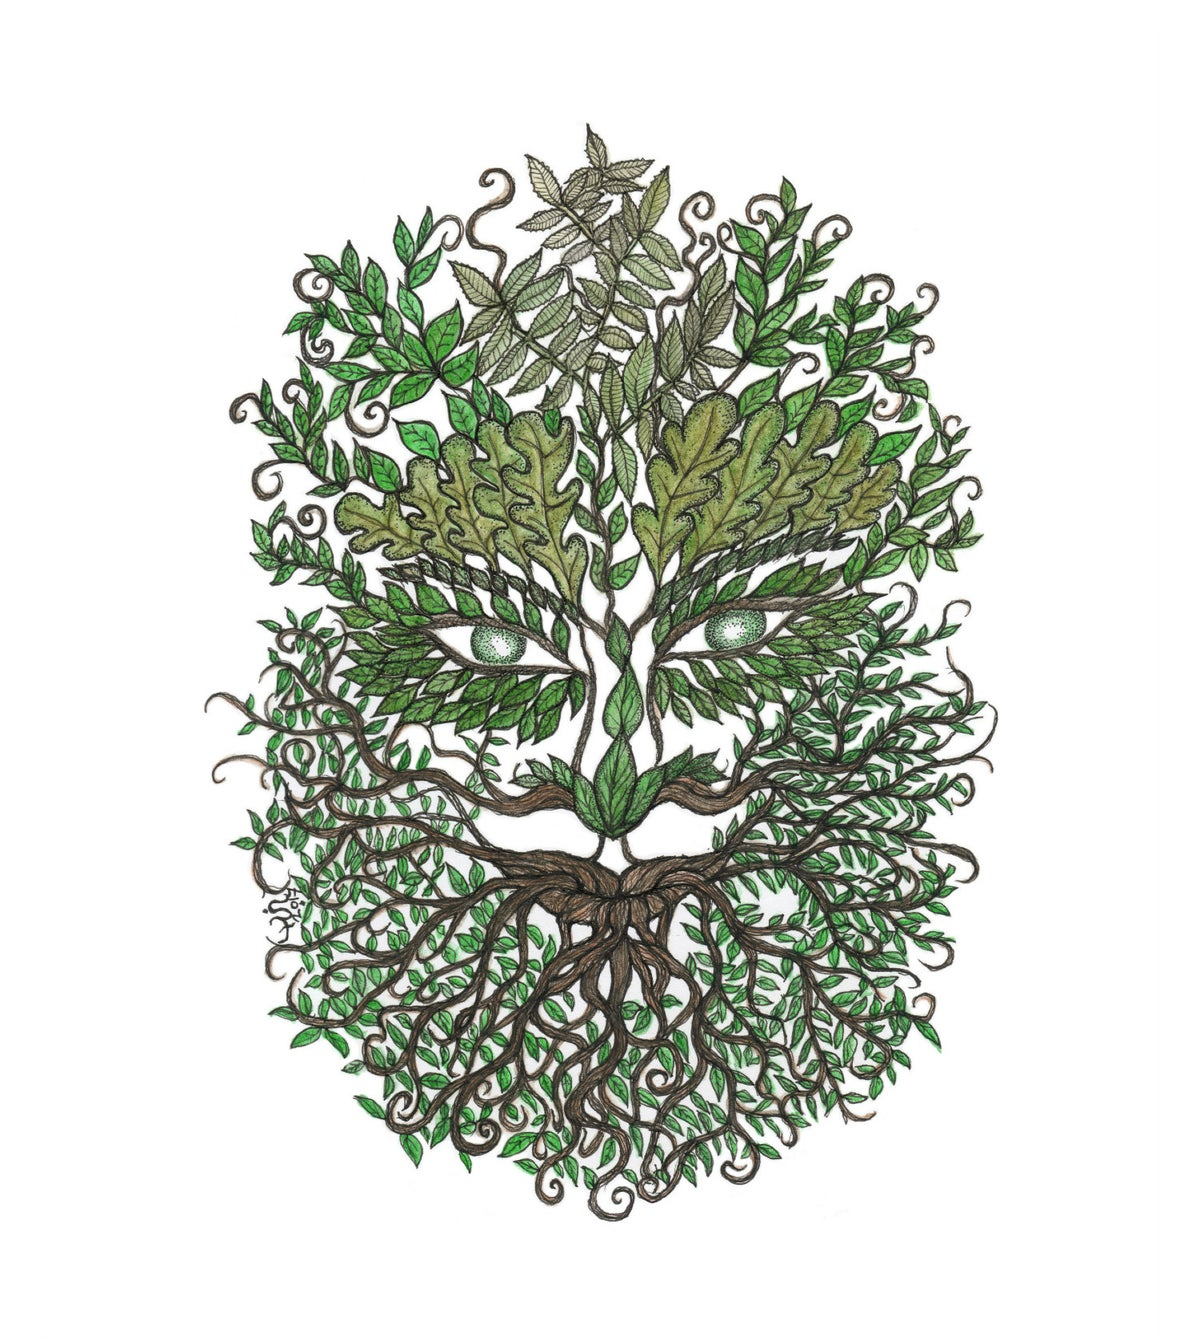 Bearded Green Man art print